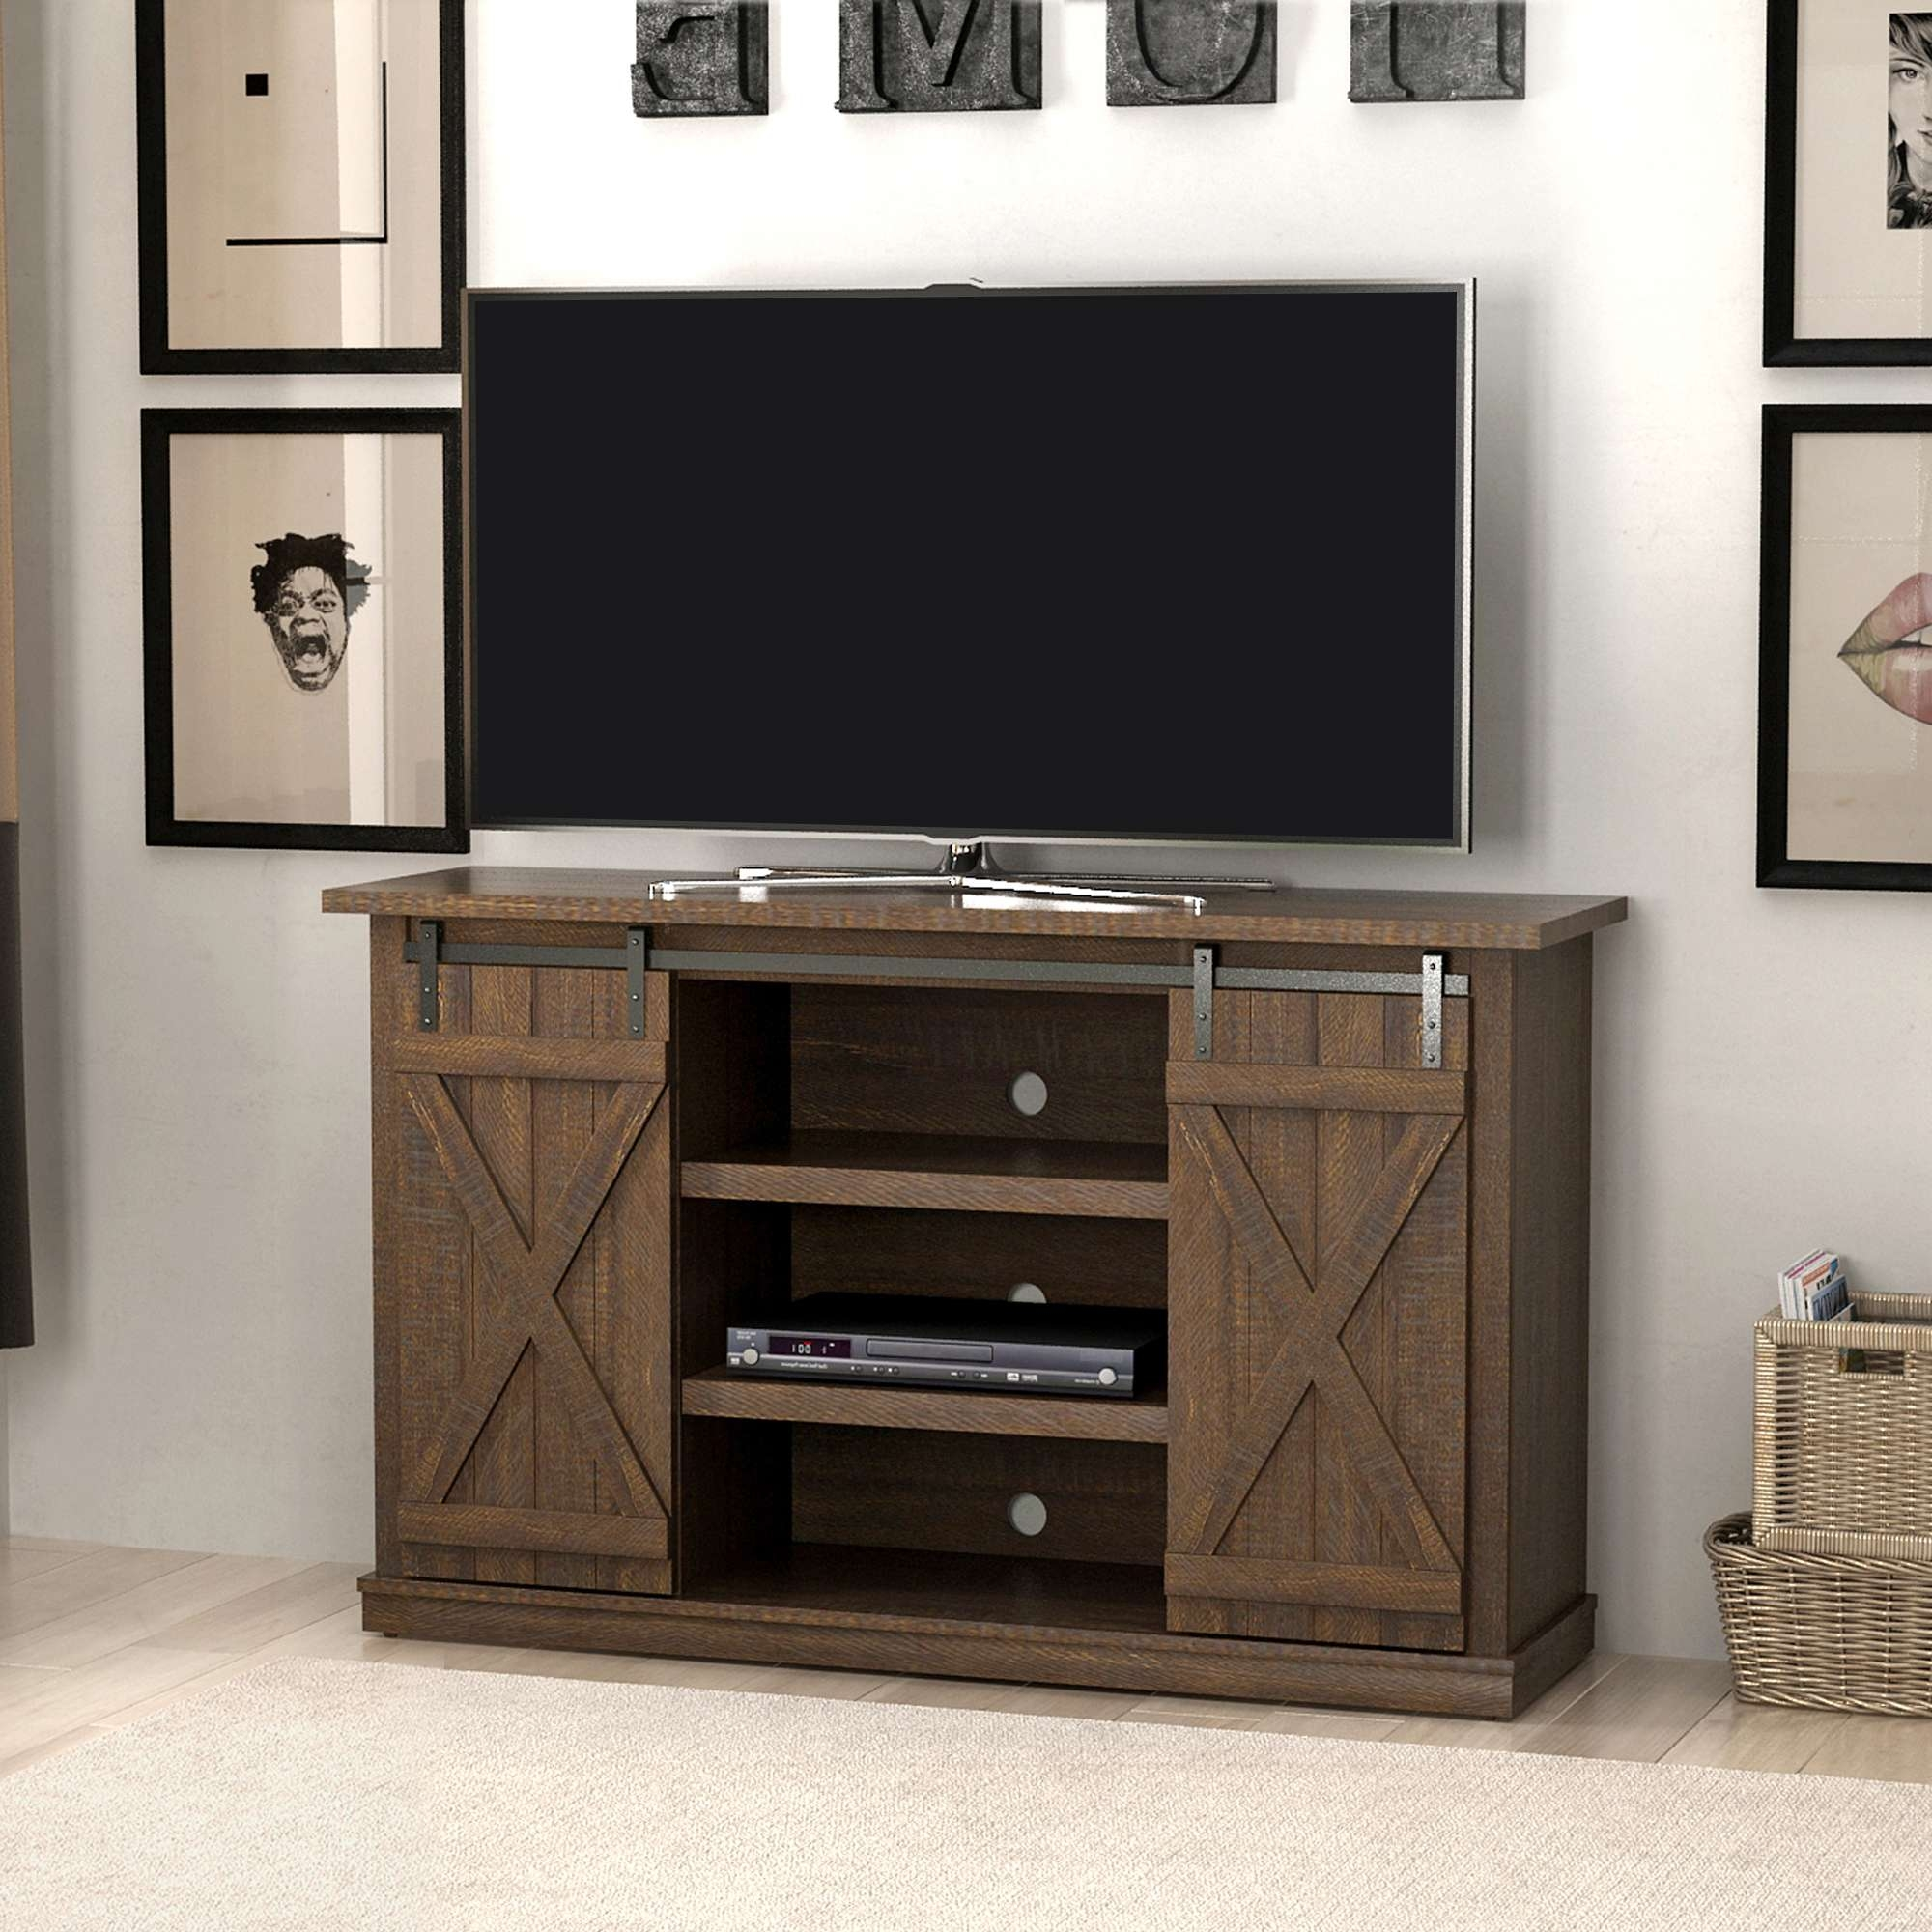 Tv Stands – Walmart In Tv Stands For Large Tvs (View 13 of 15)